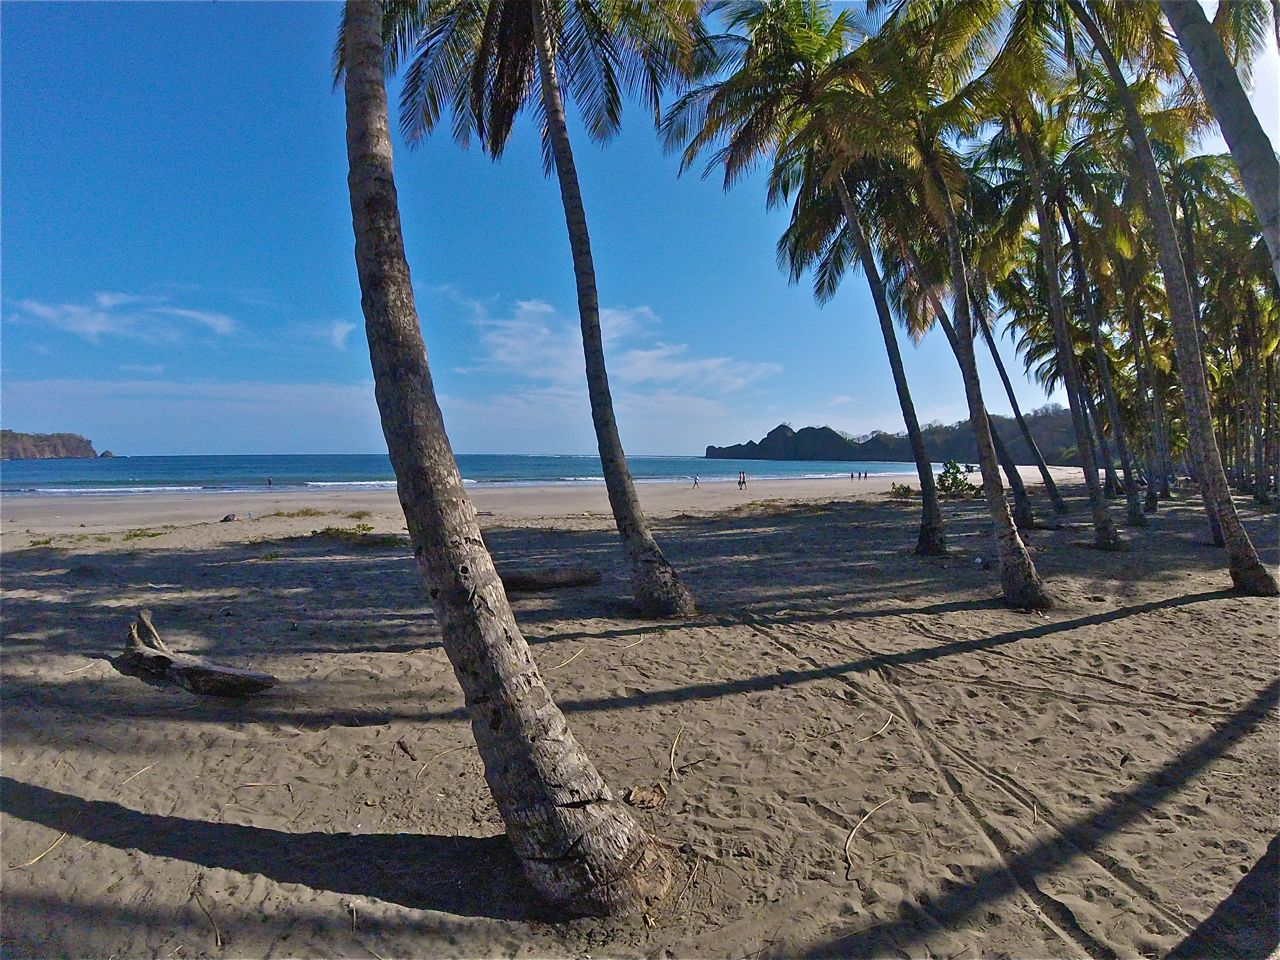 La playa Carillo au Costa Rica